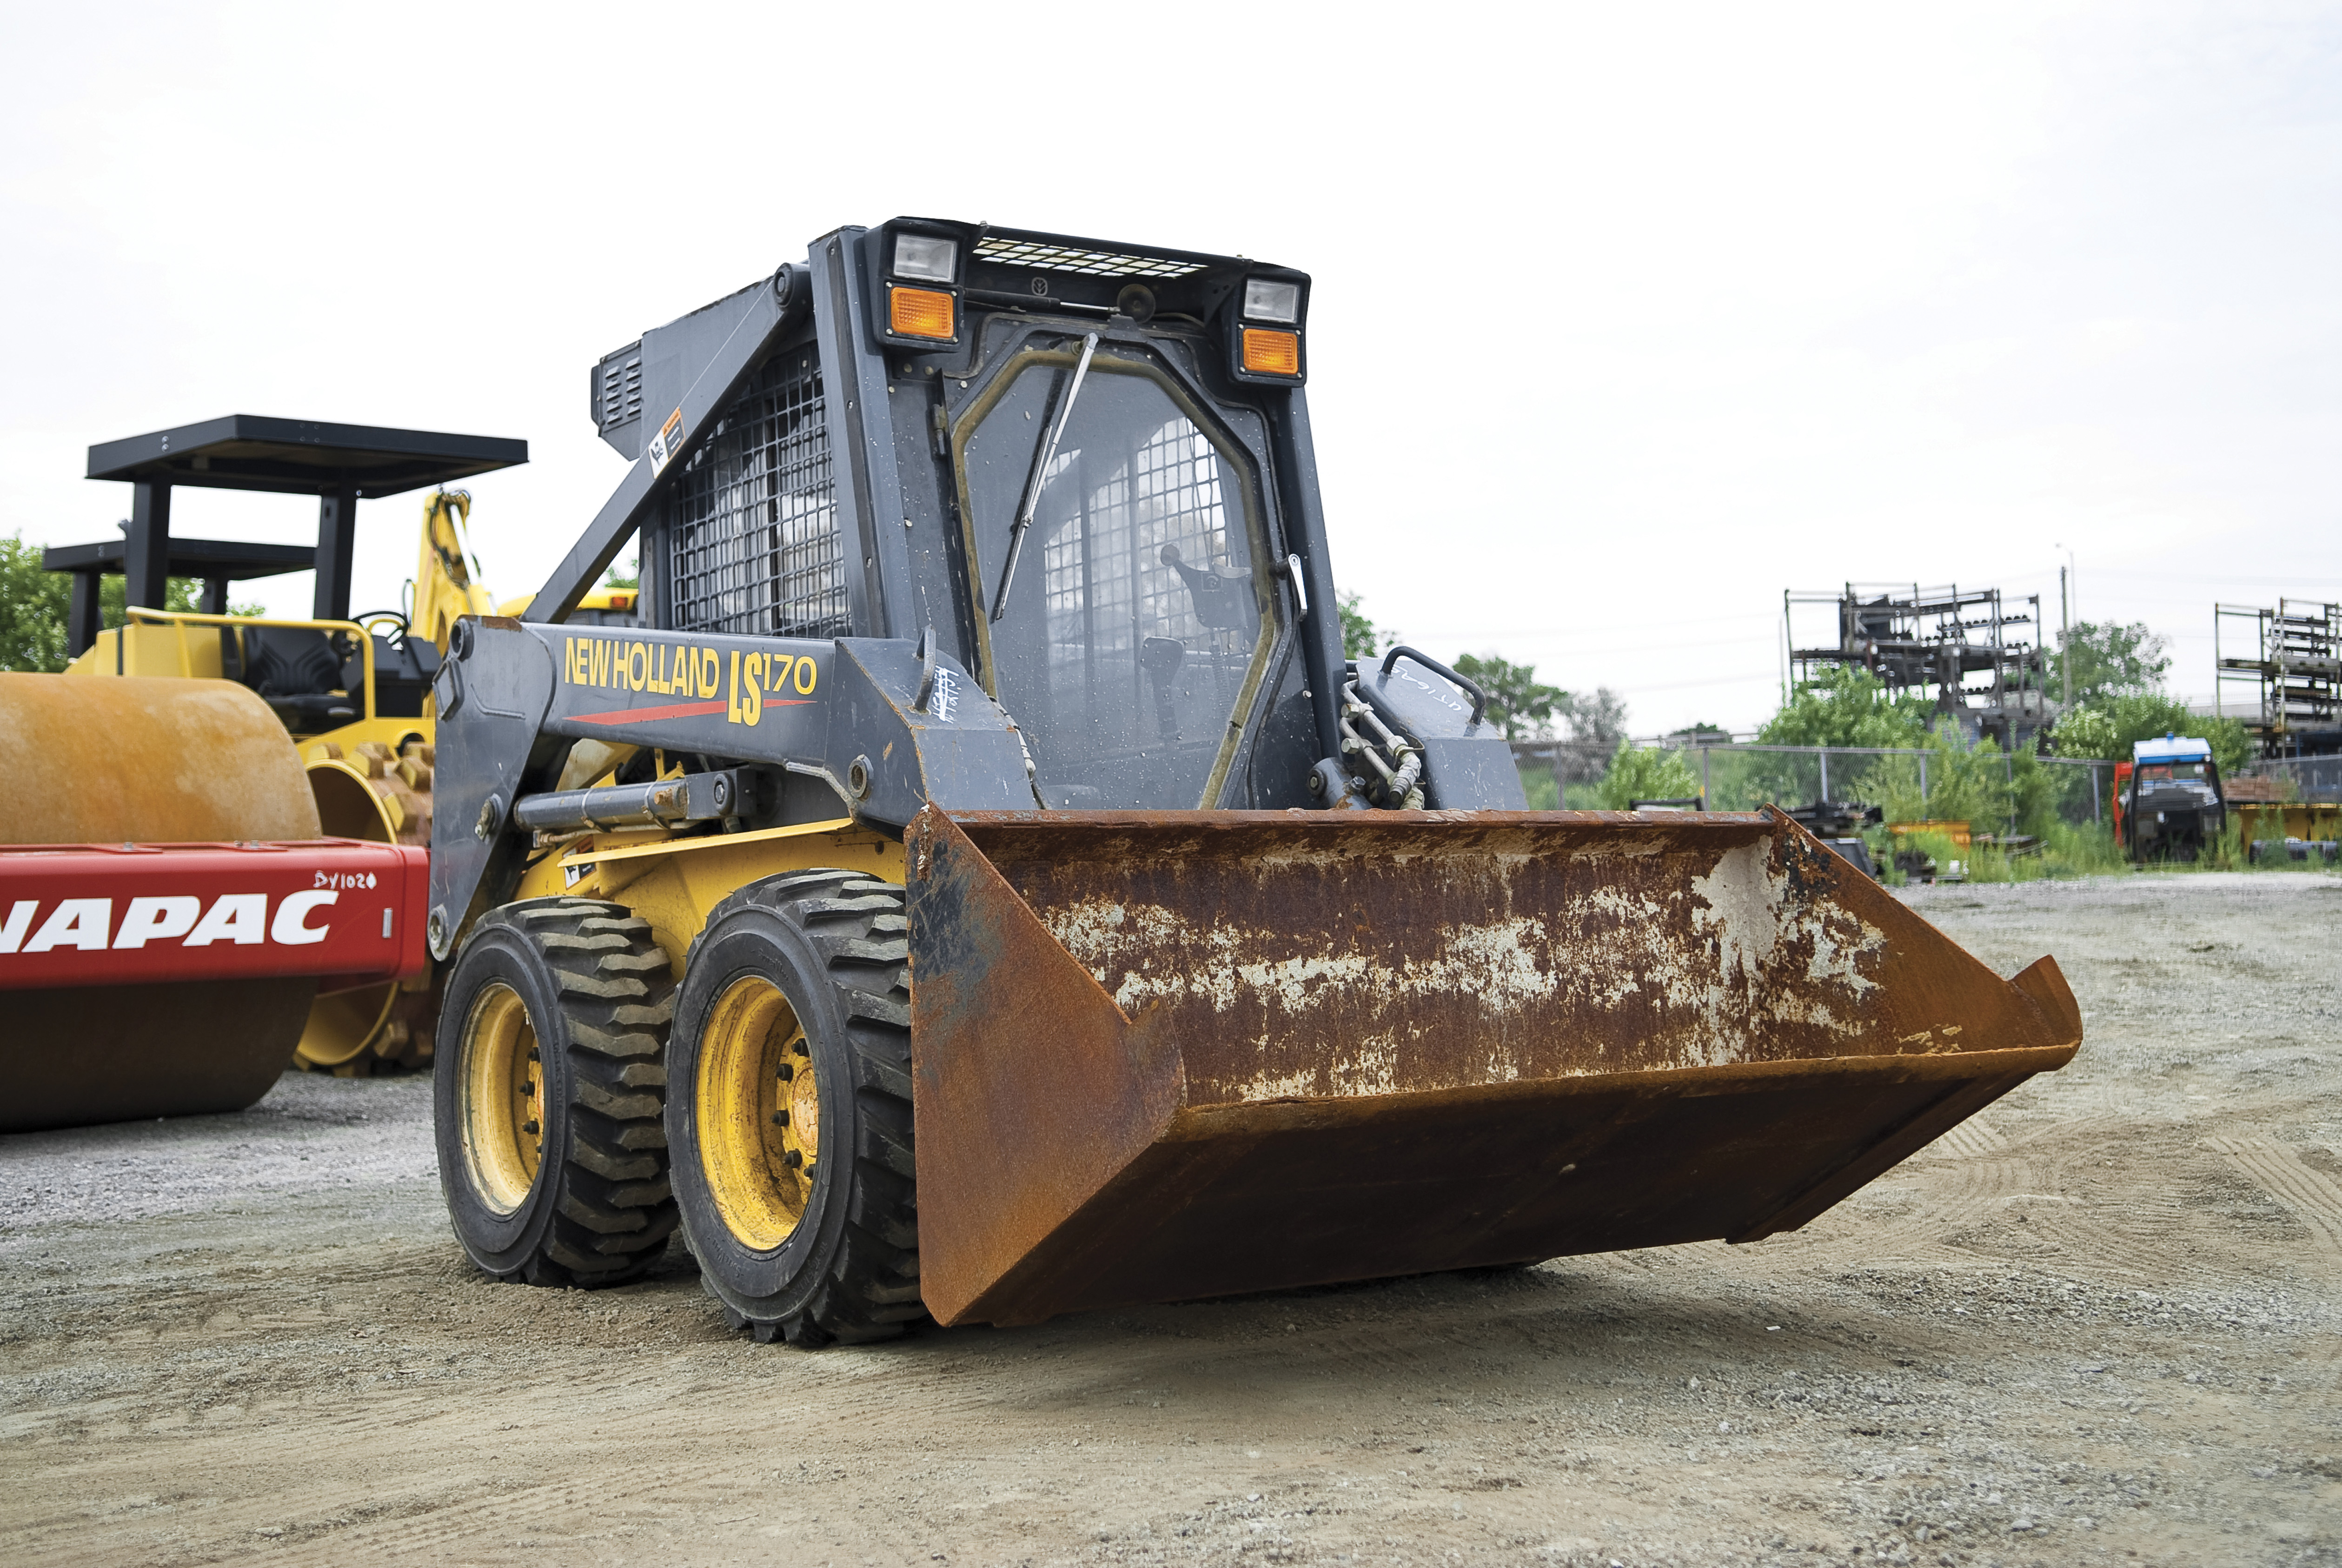 Skid steer tread patterns go from all-purpose to purpose-built